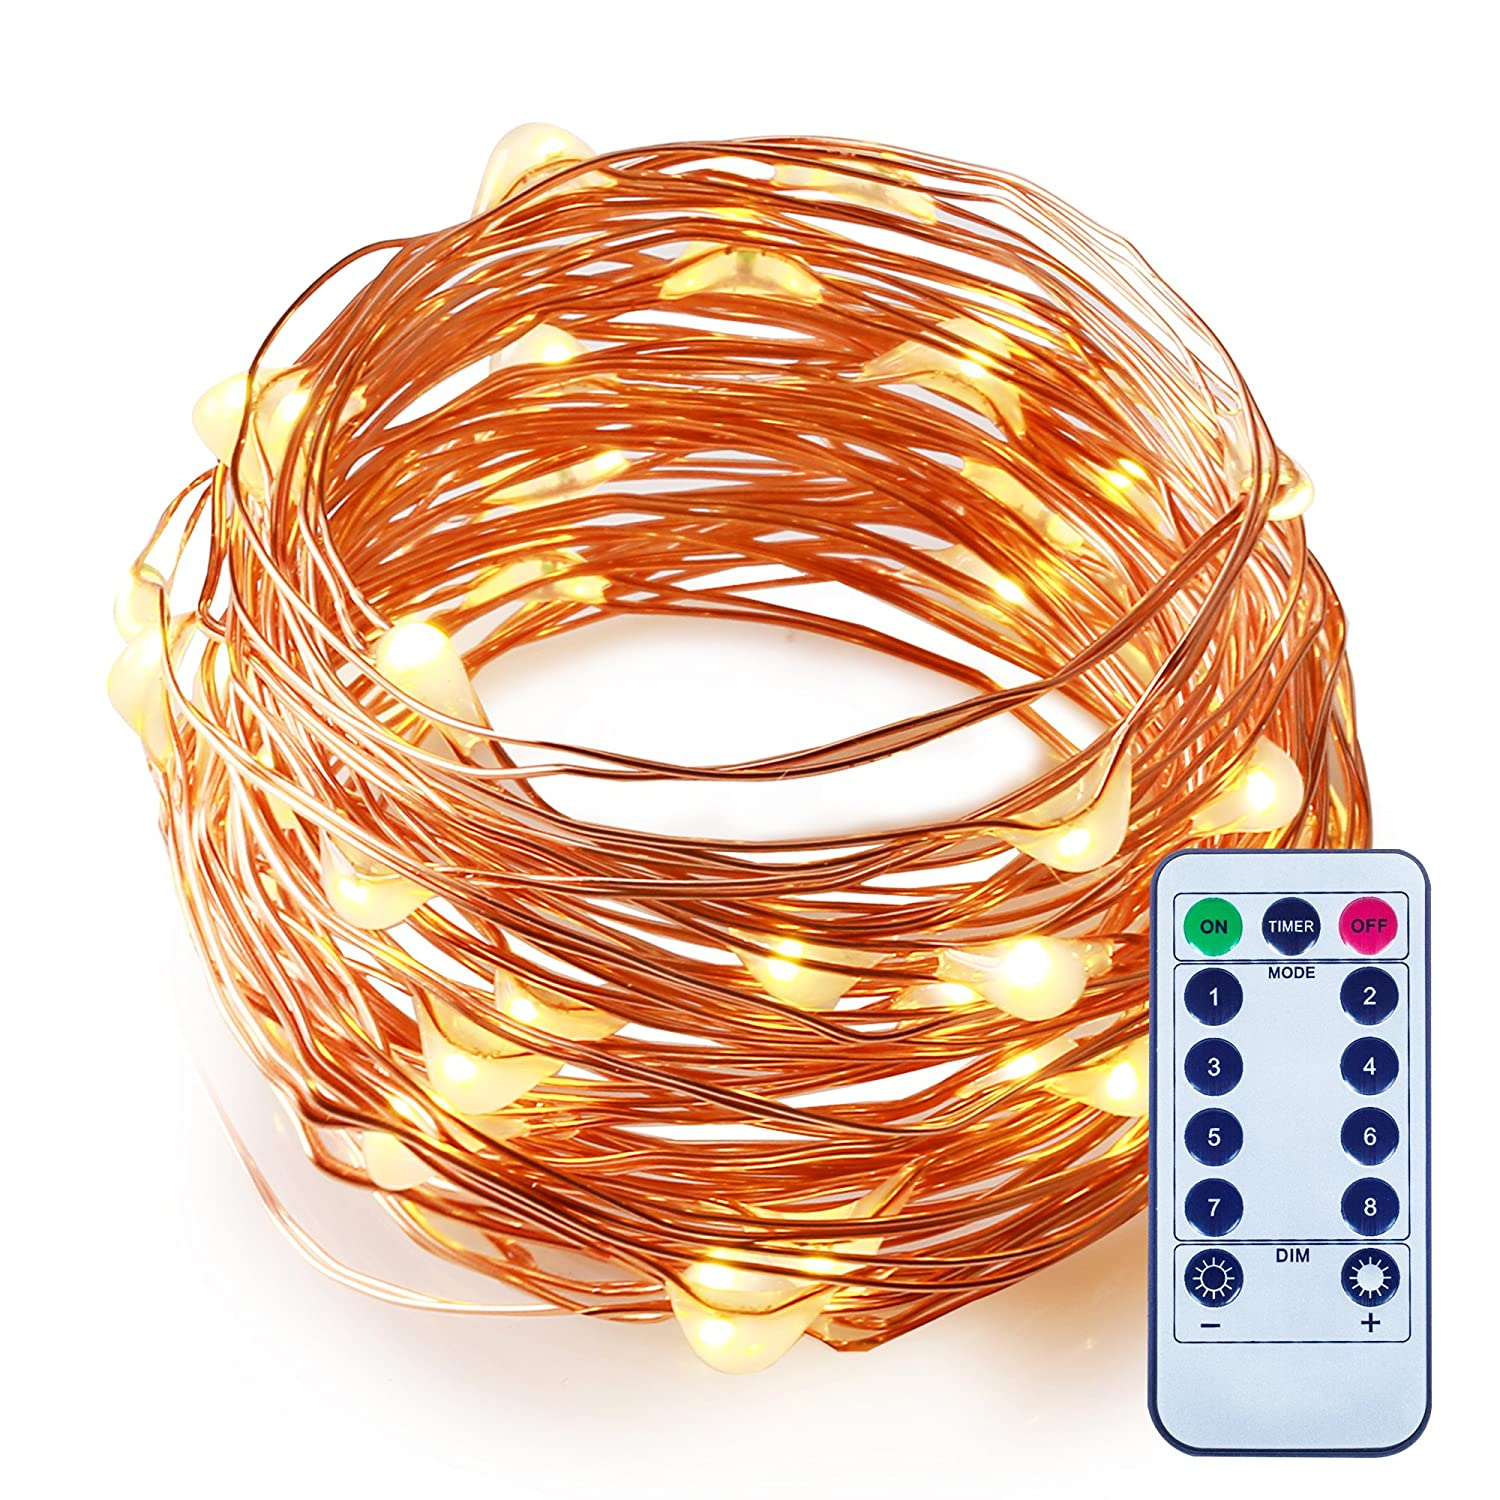 This controller lets you control 4 different branches of lights - Amazon Com Dimmable Led String Lights Battery Powered With Remote Control Itart Romantic Purple Mini String Lights 50 Leds 16 7ft 5m Super Bright